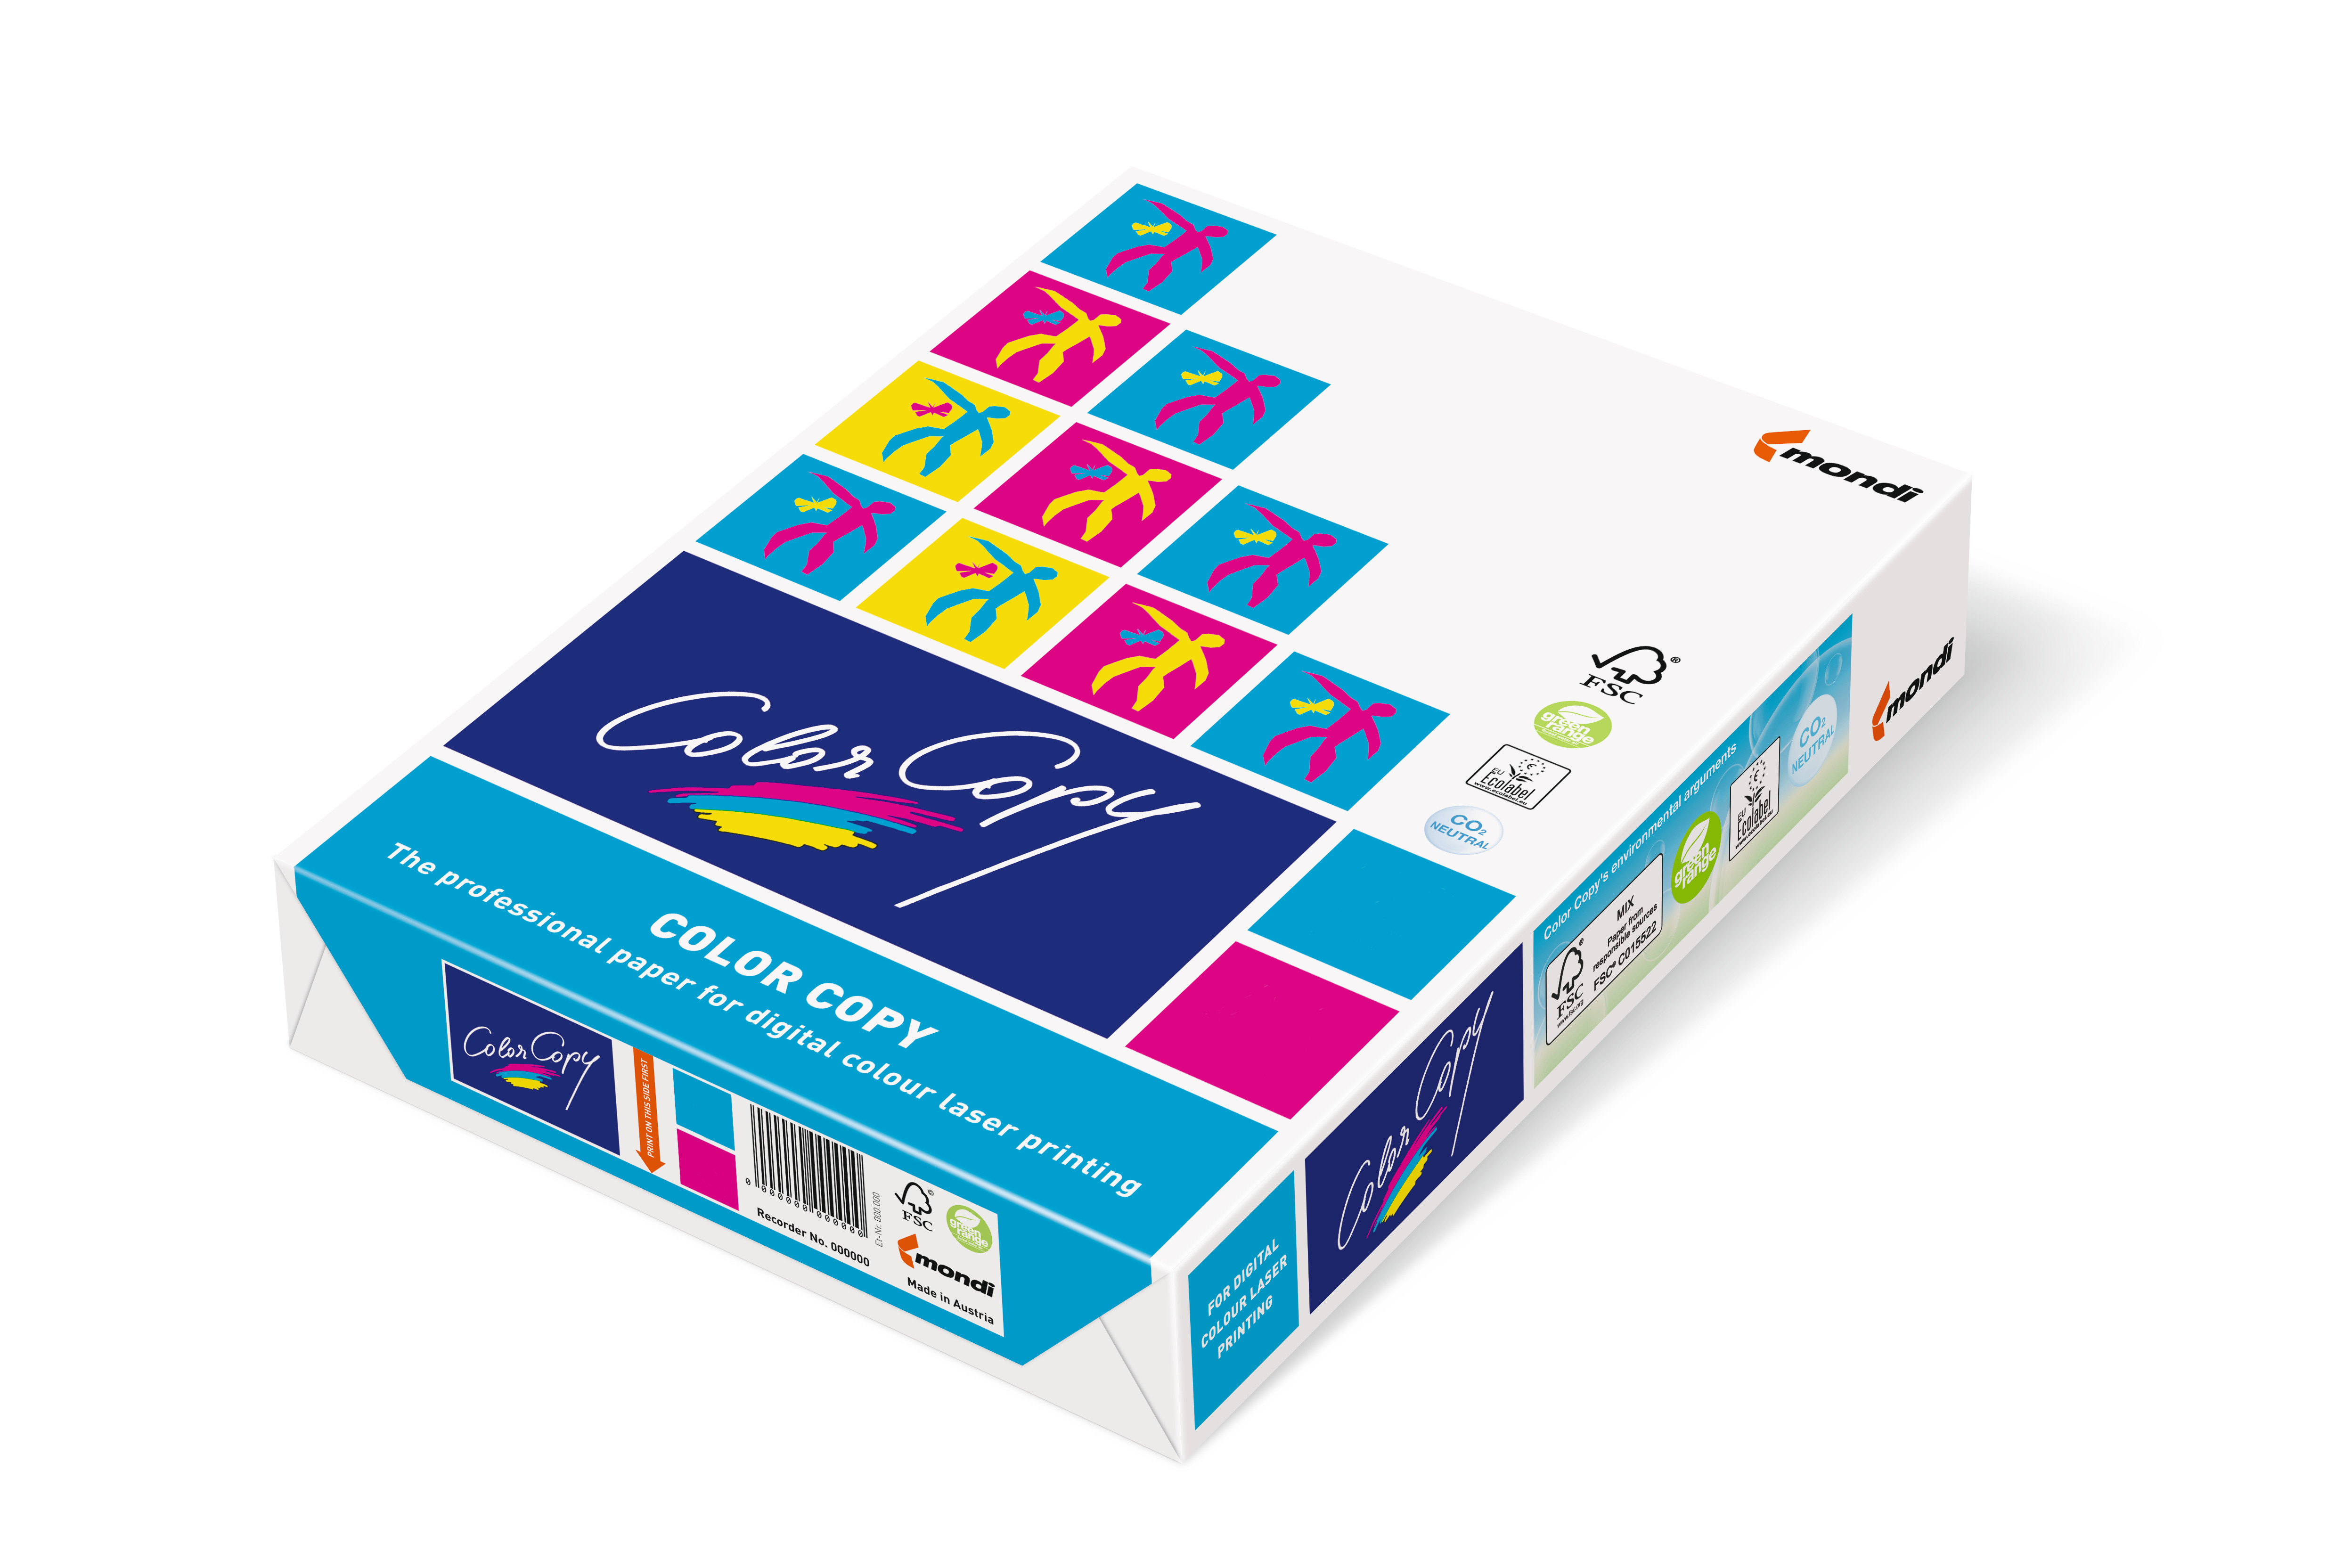 Mondi Color Copy 100g/m² DIN-A3+ (457x305) - 500 Blatt